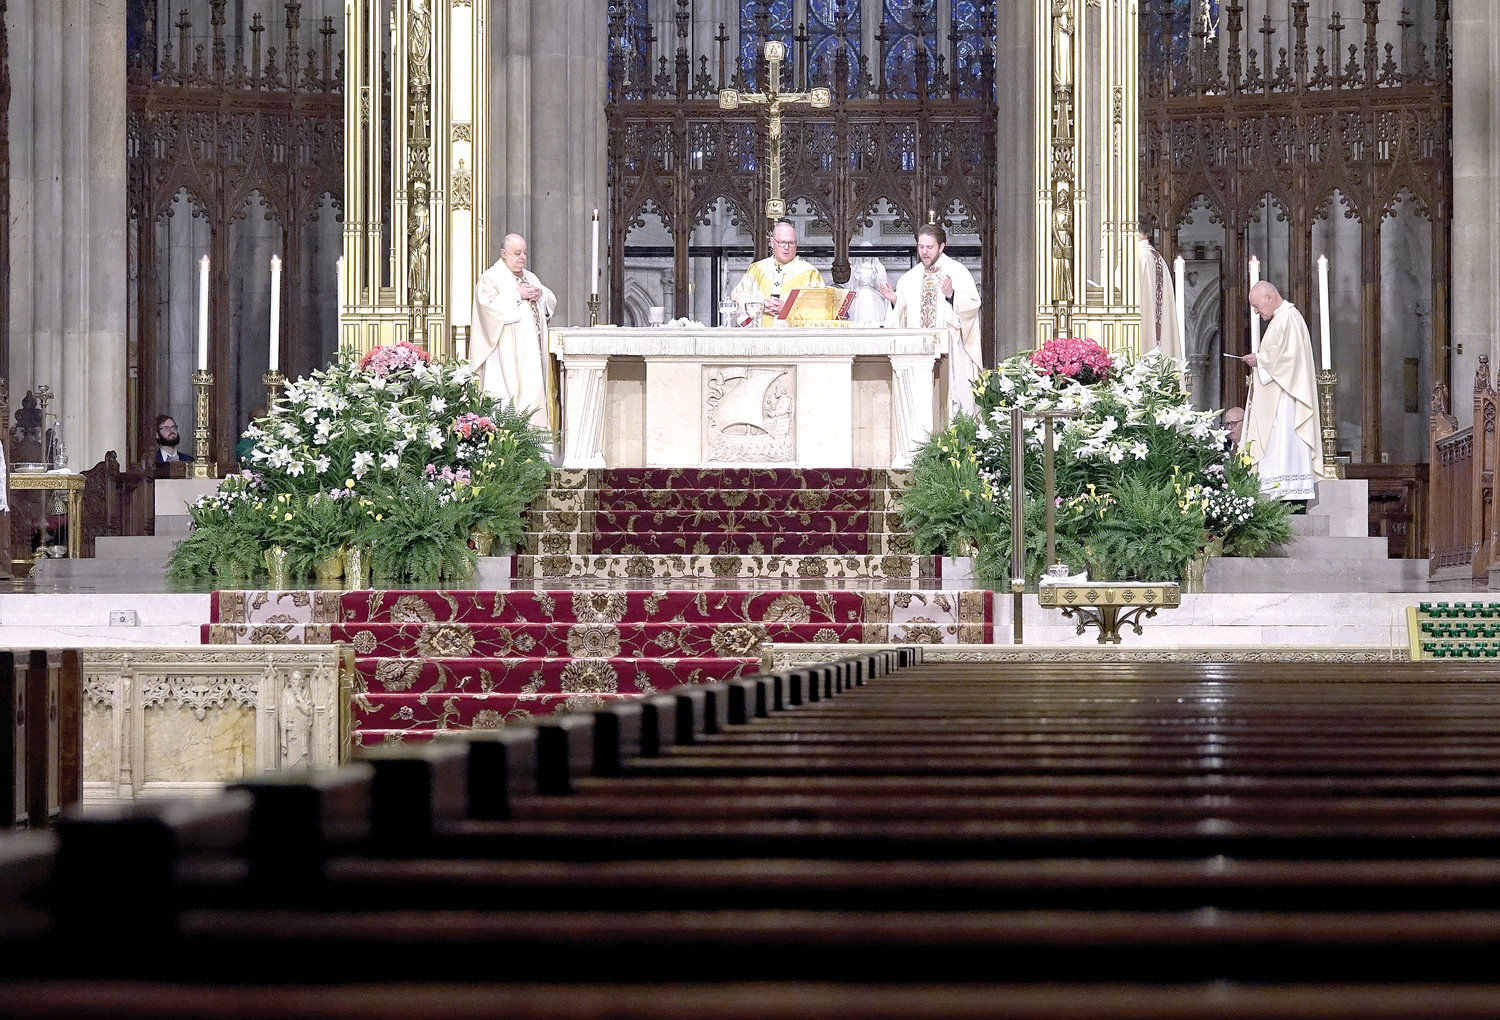 ALLELUIA—During the 10 a.m. Mass celebrated by Cardinal Dolan on Easter Sunday, April 12, the resplendent cathedral had rows of empty pews. The large congregation that customarily attends was not permitted as Masses are being offered without people physically present as a precaution due to the coronavirus pandemic.